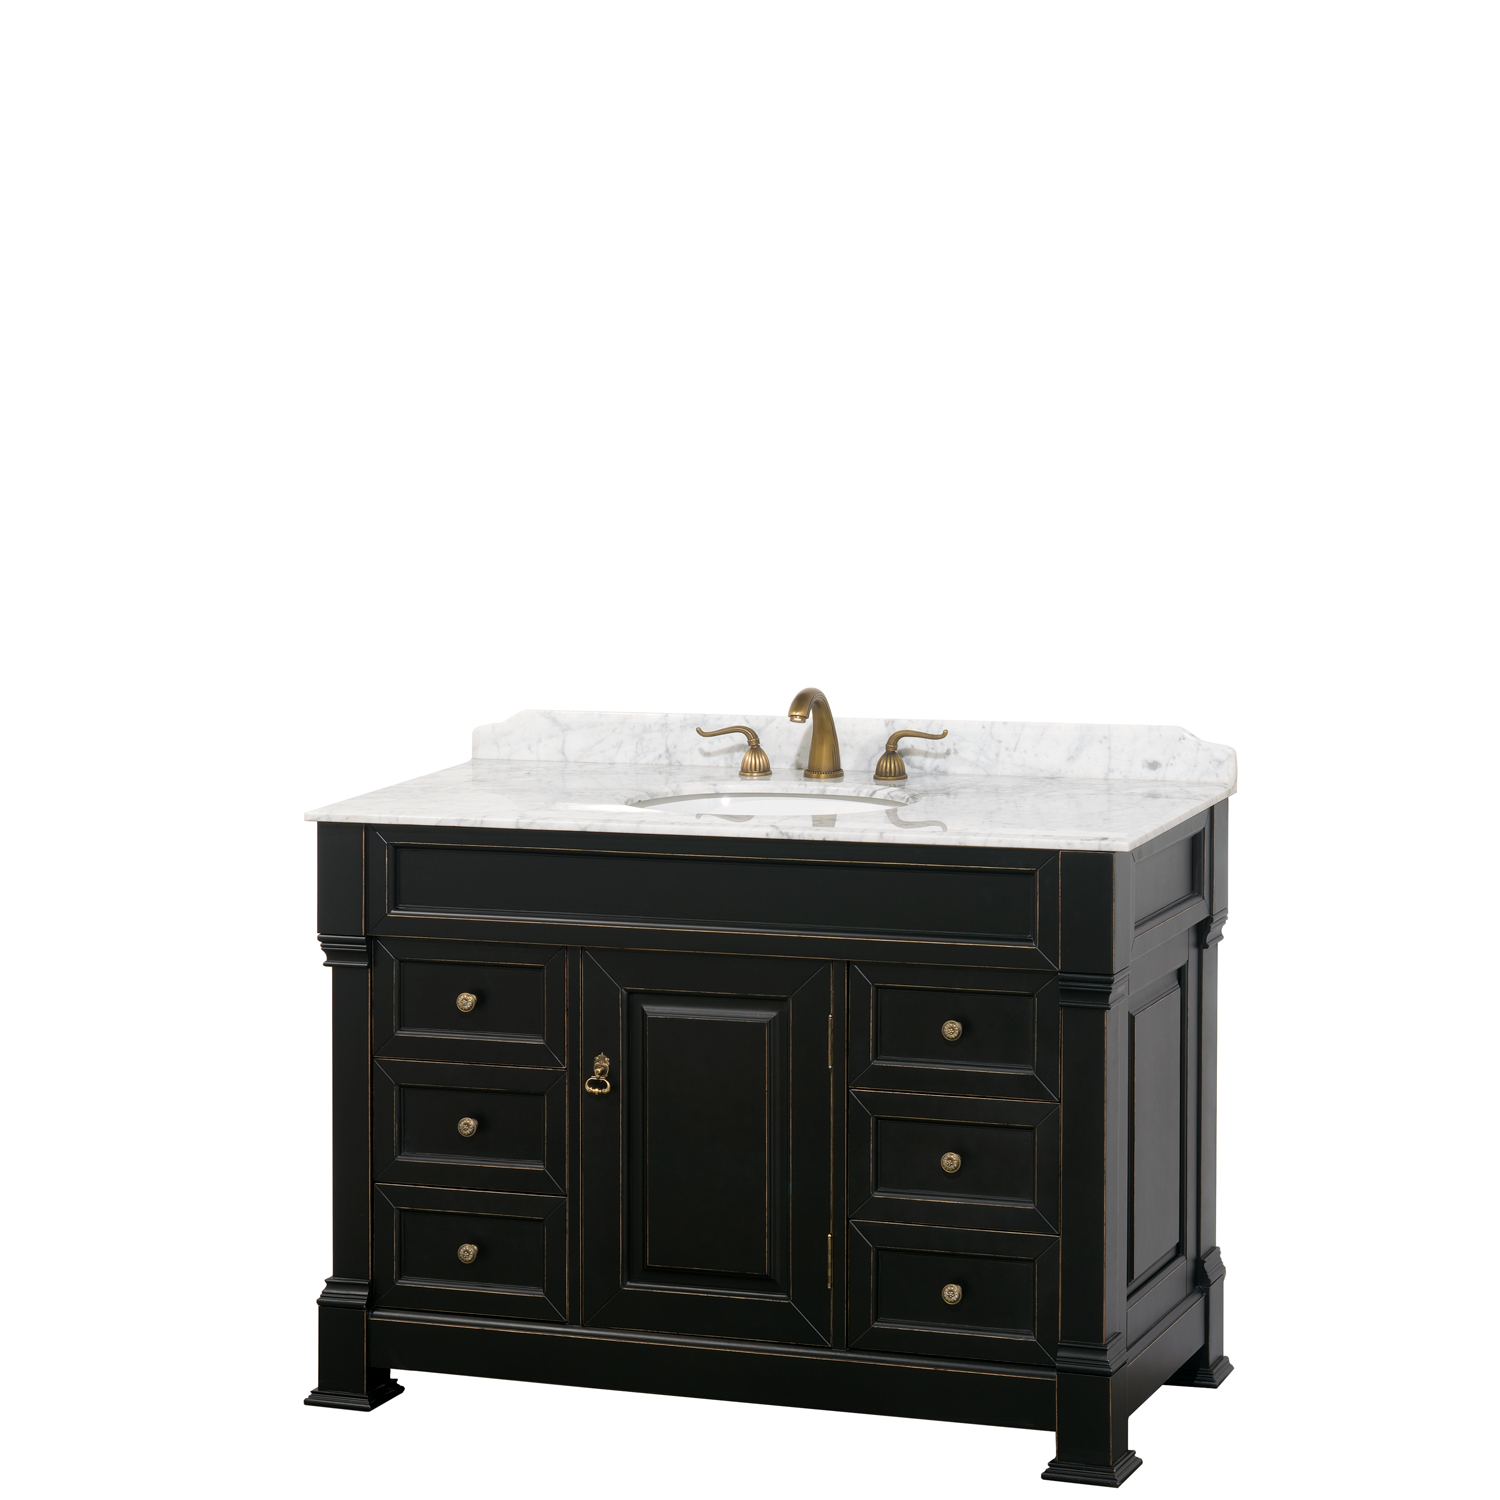 Andover 48 Traditional Bathroom Single Vanity Set Black Beautiful Bathroom Furniture For Every Home Wyndham Collection